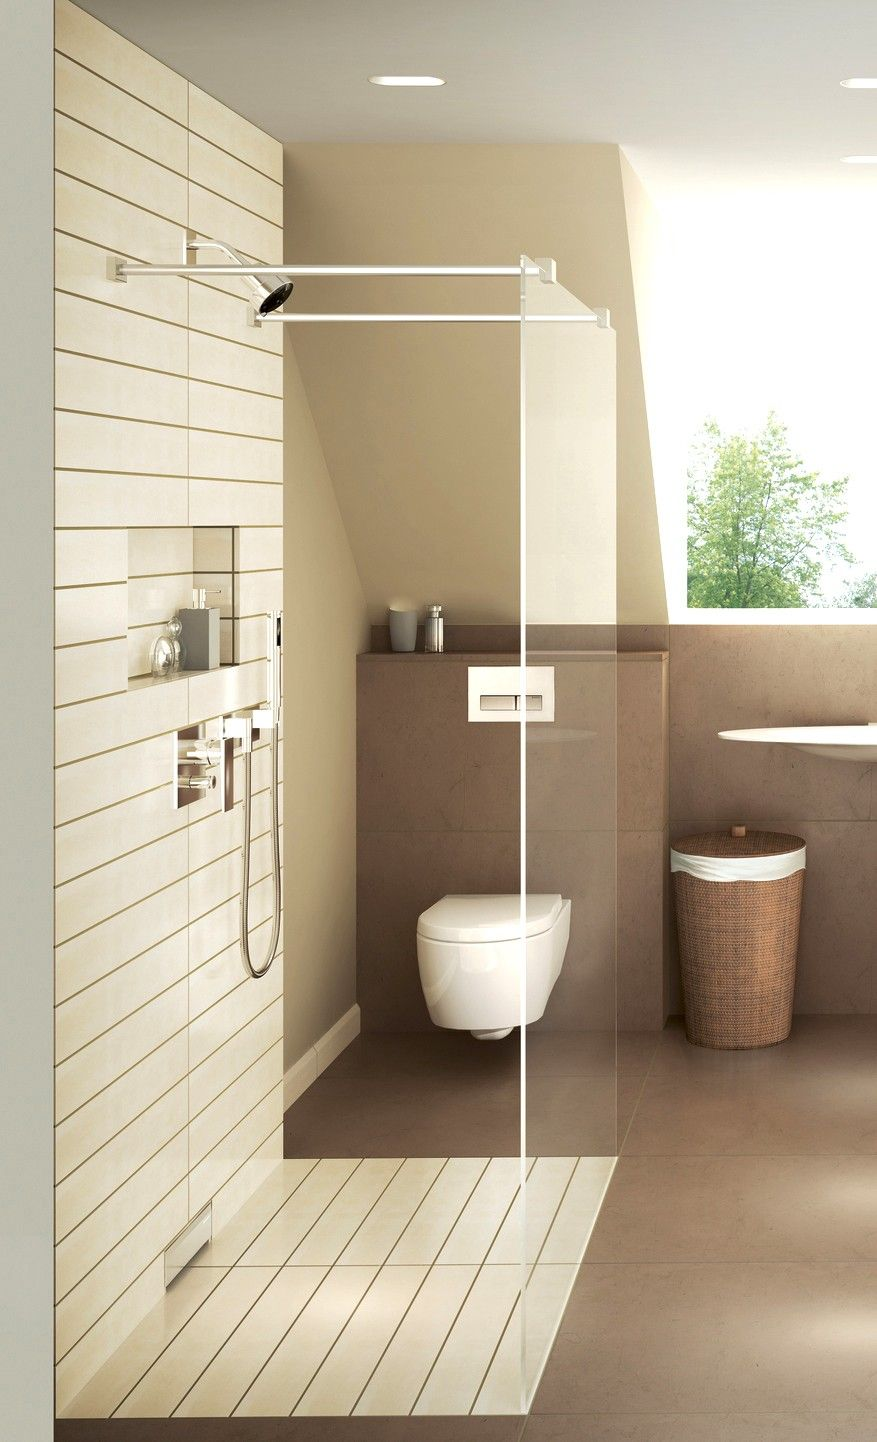 Reduce Bathroom Water Use While Also Improving The Bathroom Aesthetic With Customizable Toilet Systems From Geb Toilet Design Bathrooms Remodel Bathroom Design